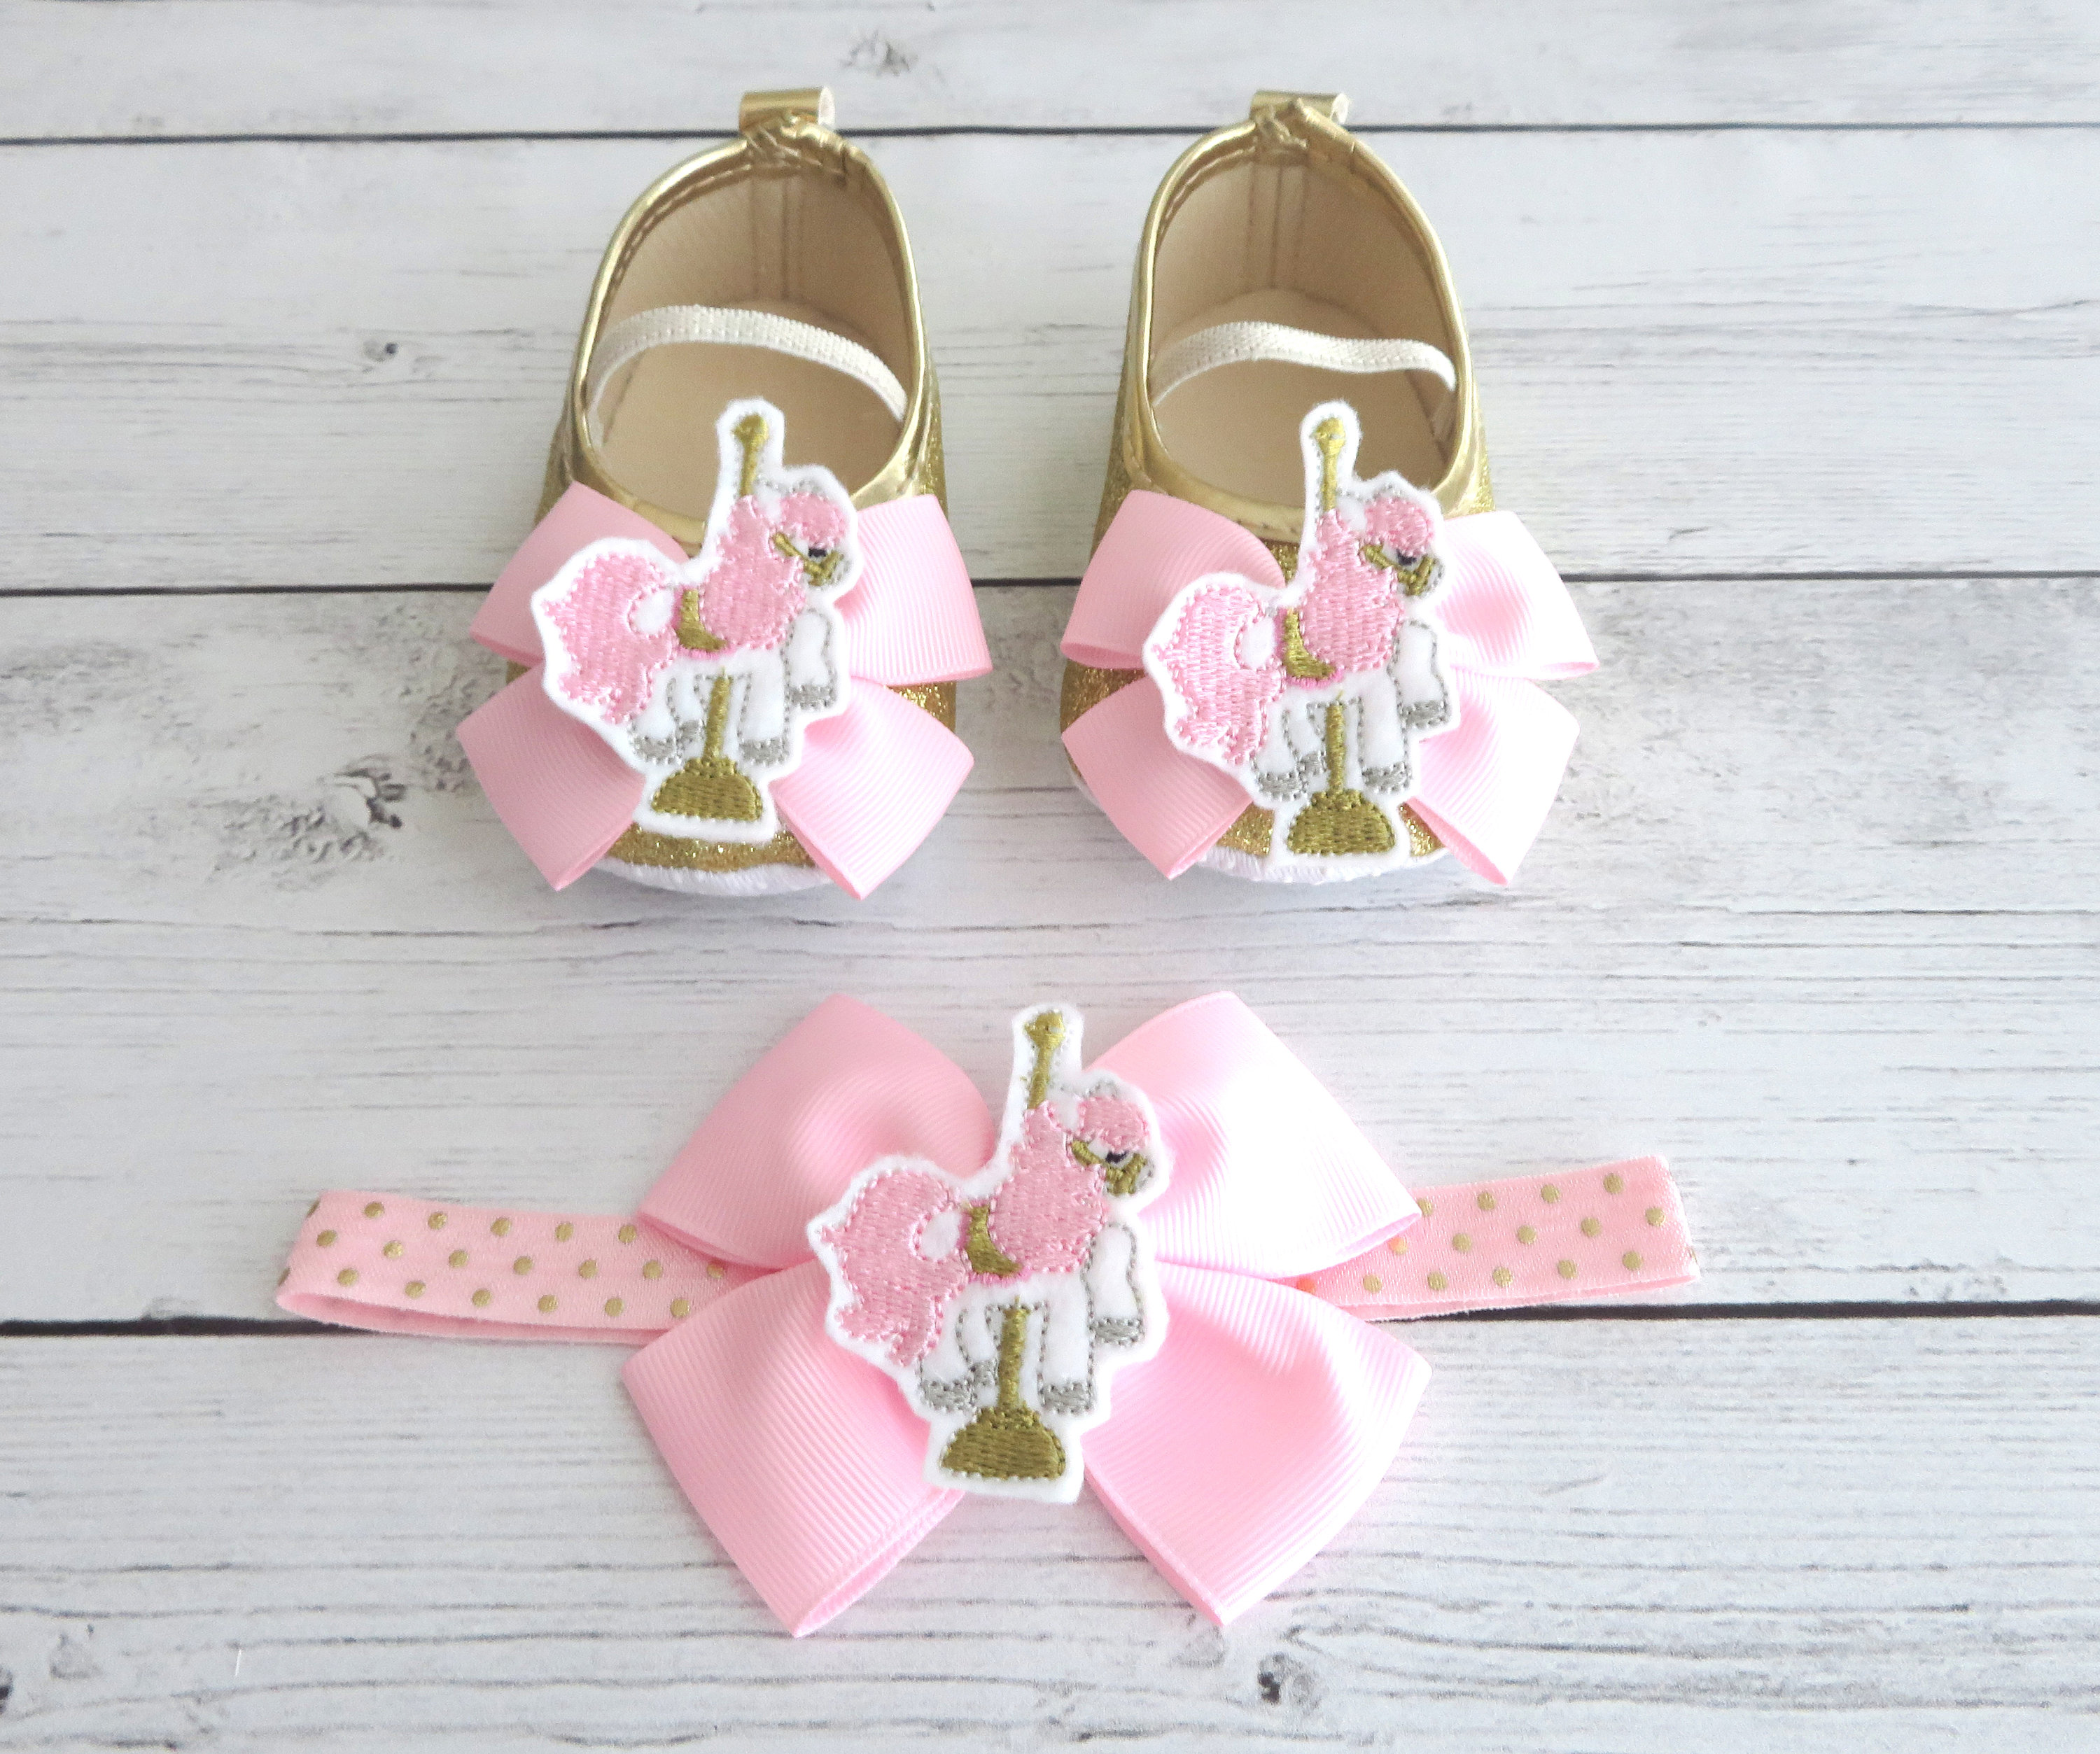 Carousel Horse First Birthday Shoes & Headband for Girl in light pink and gold -merry-go-round, carousel horse 1st bday girl, birthday shoes